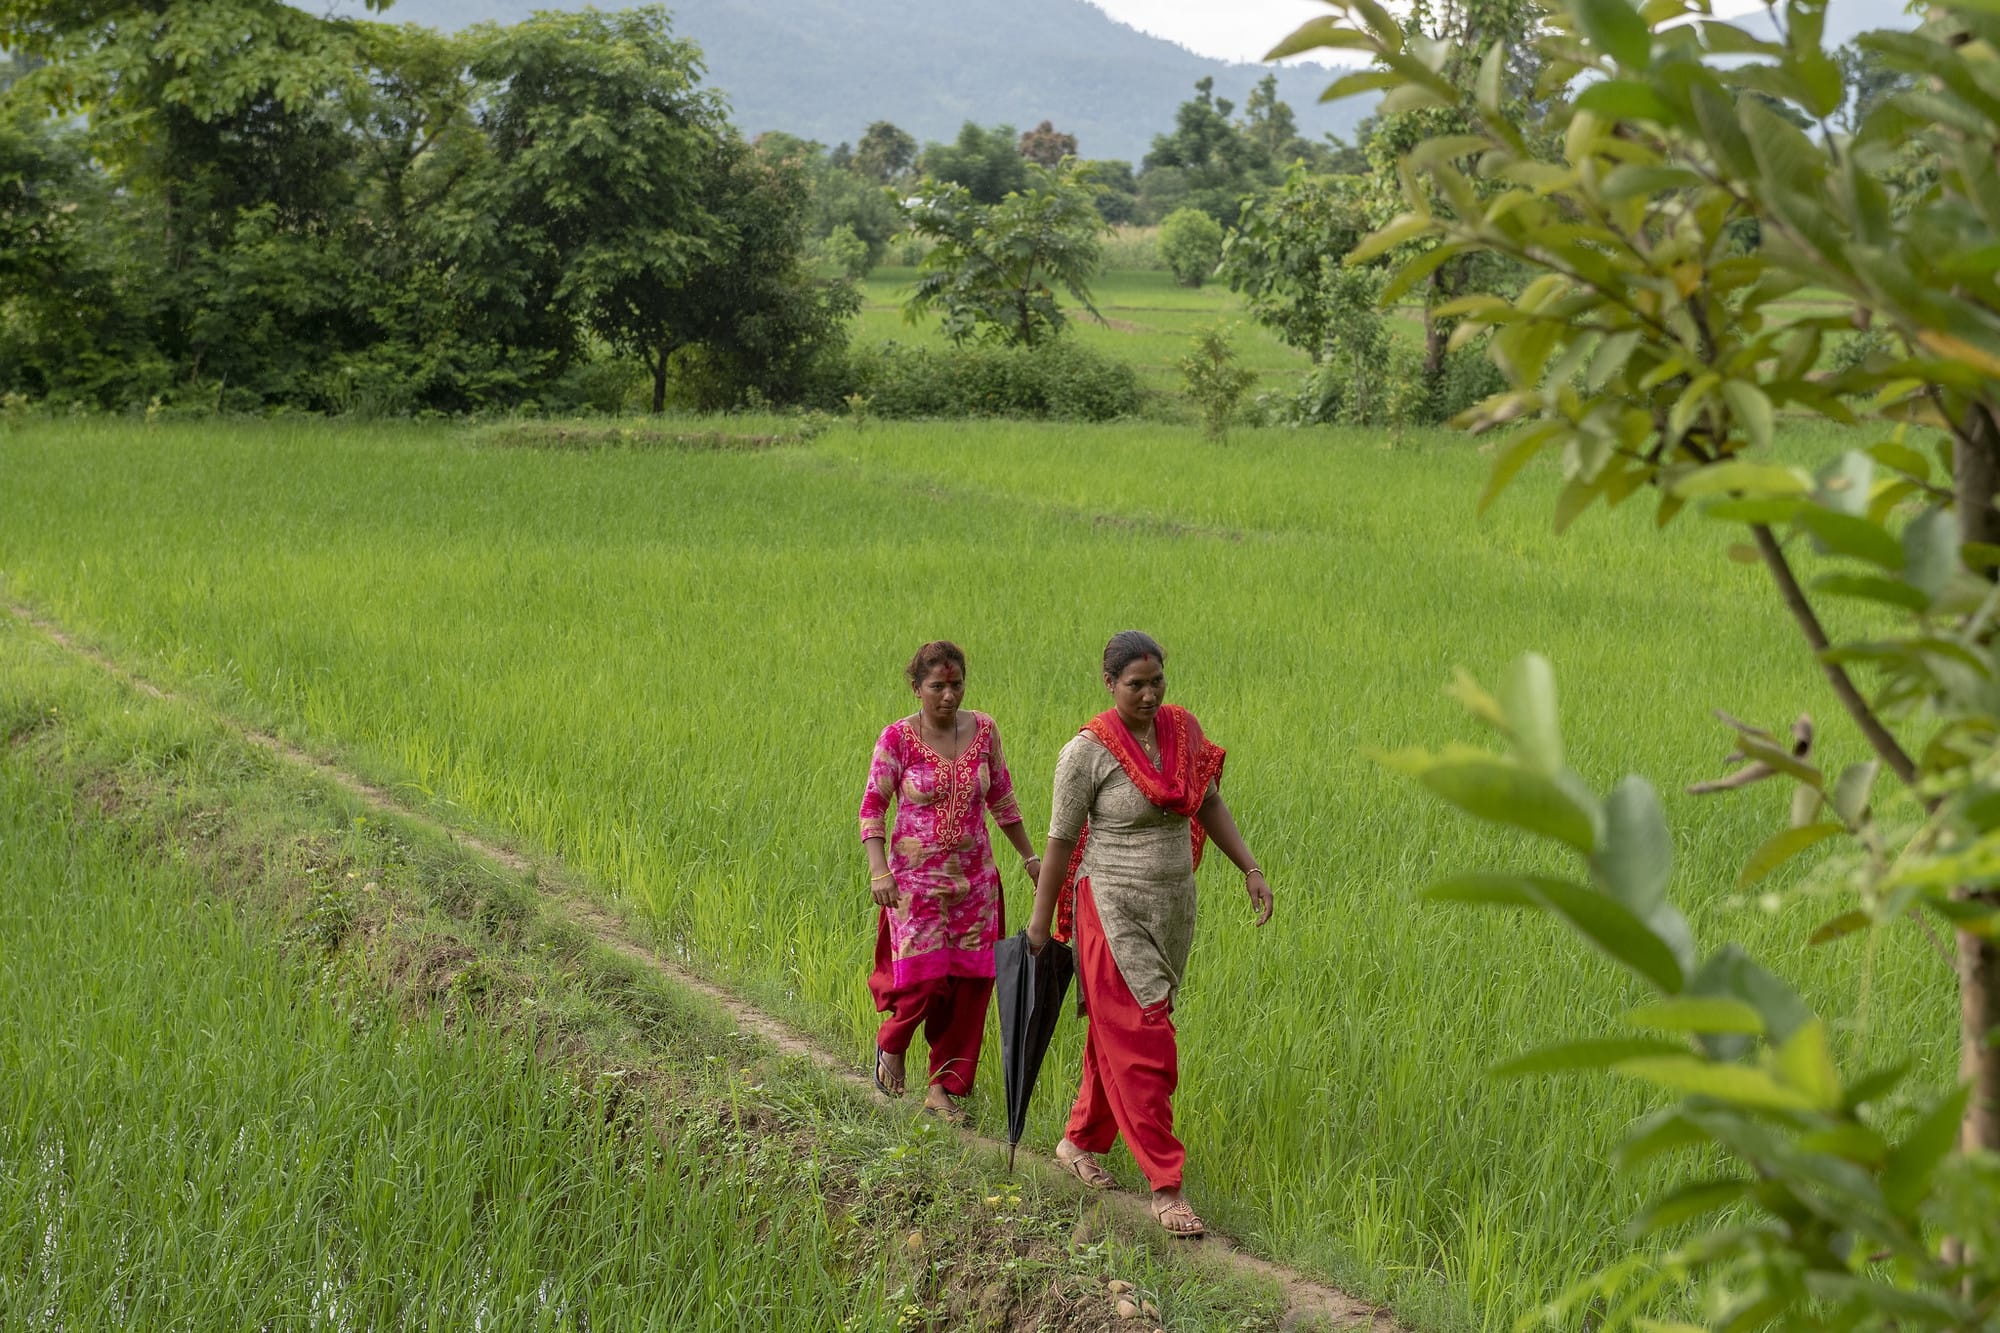 Transformational Agroecology Across Food, Land, and Water Systems